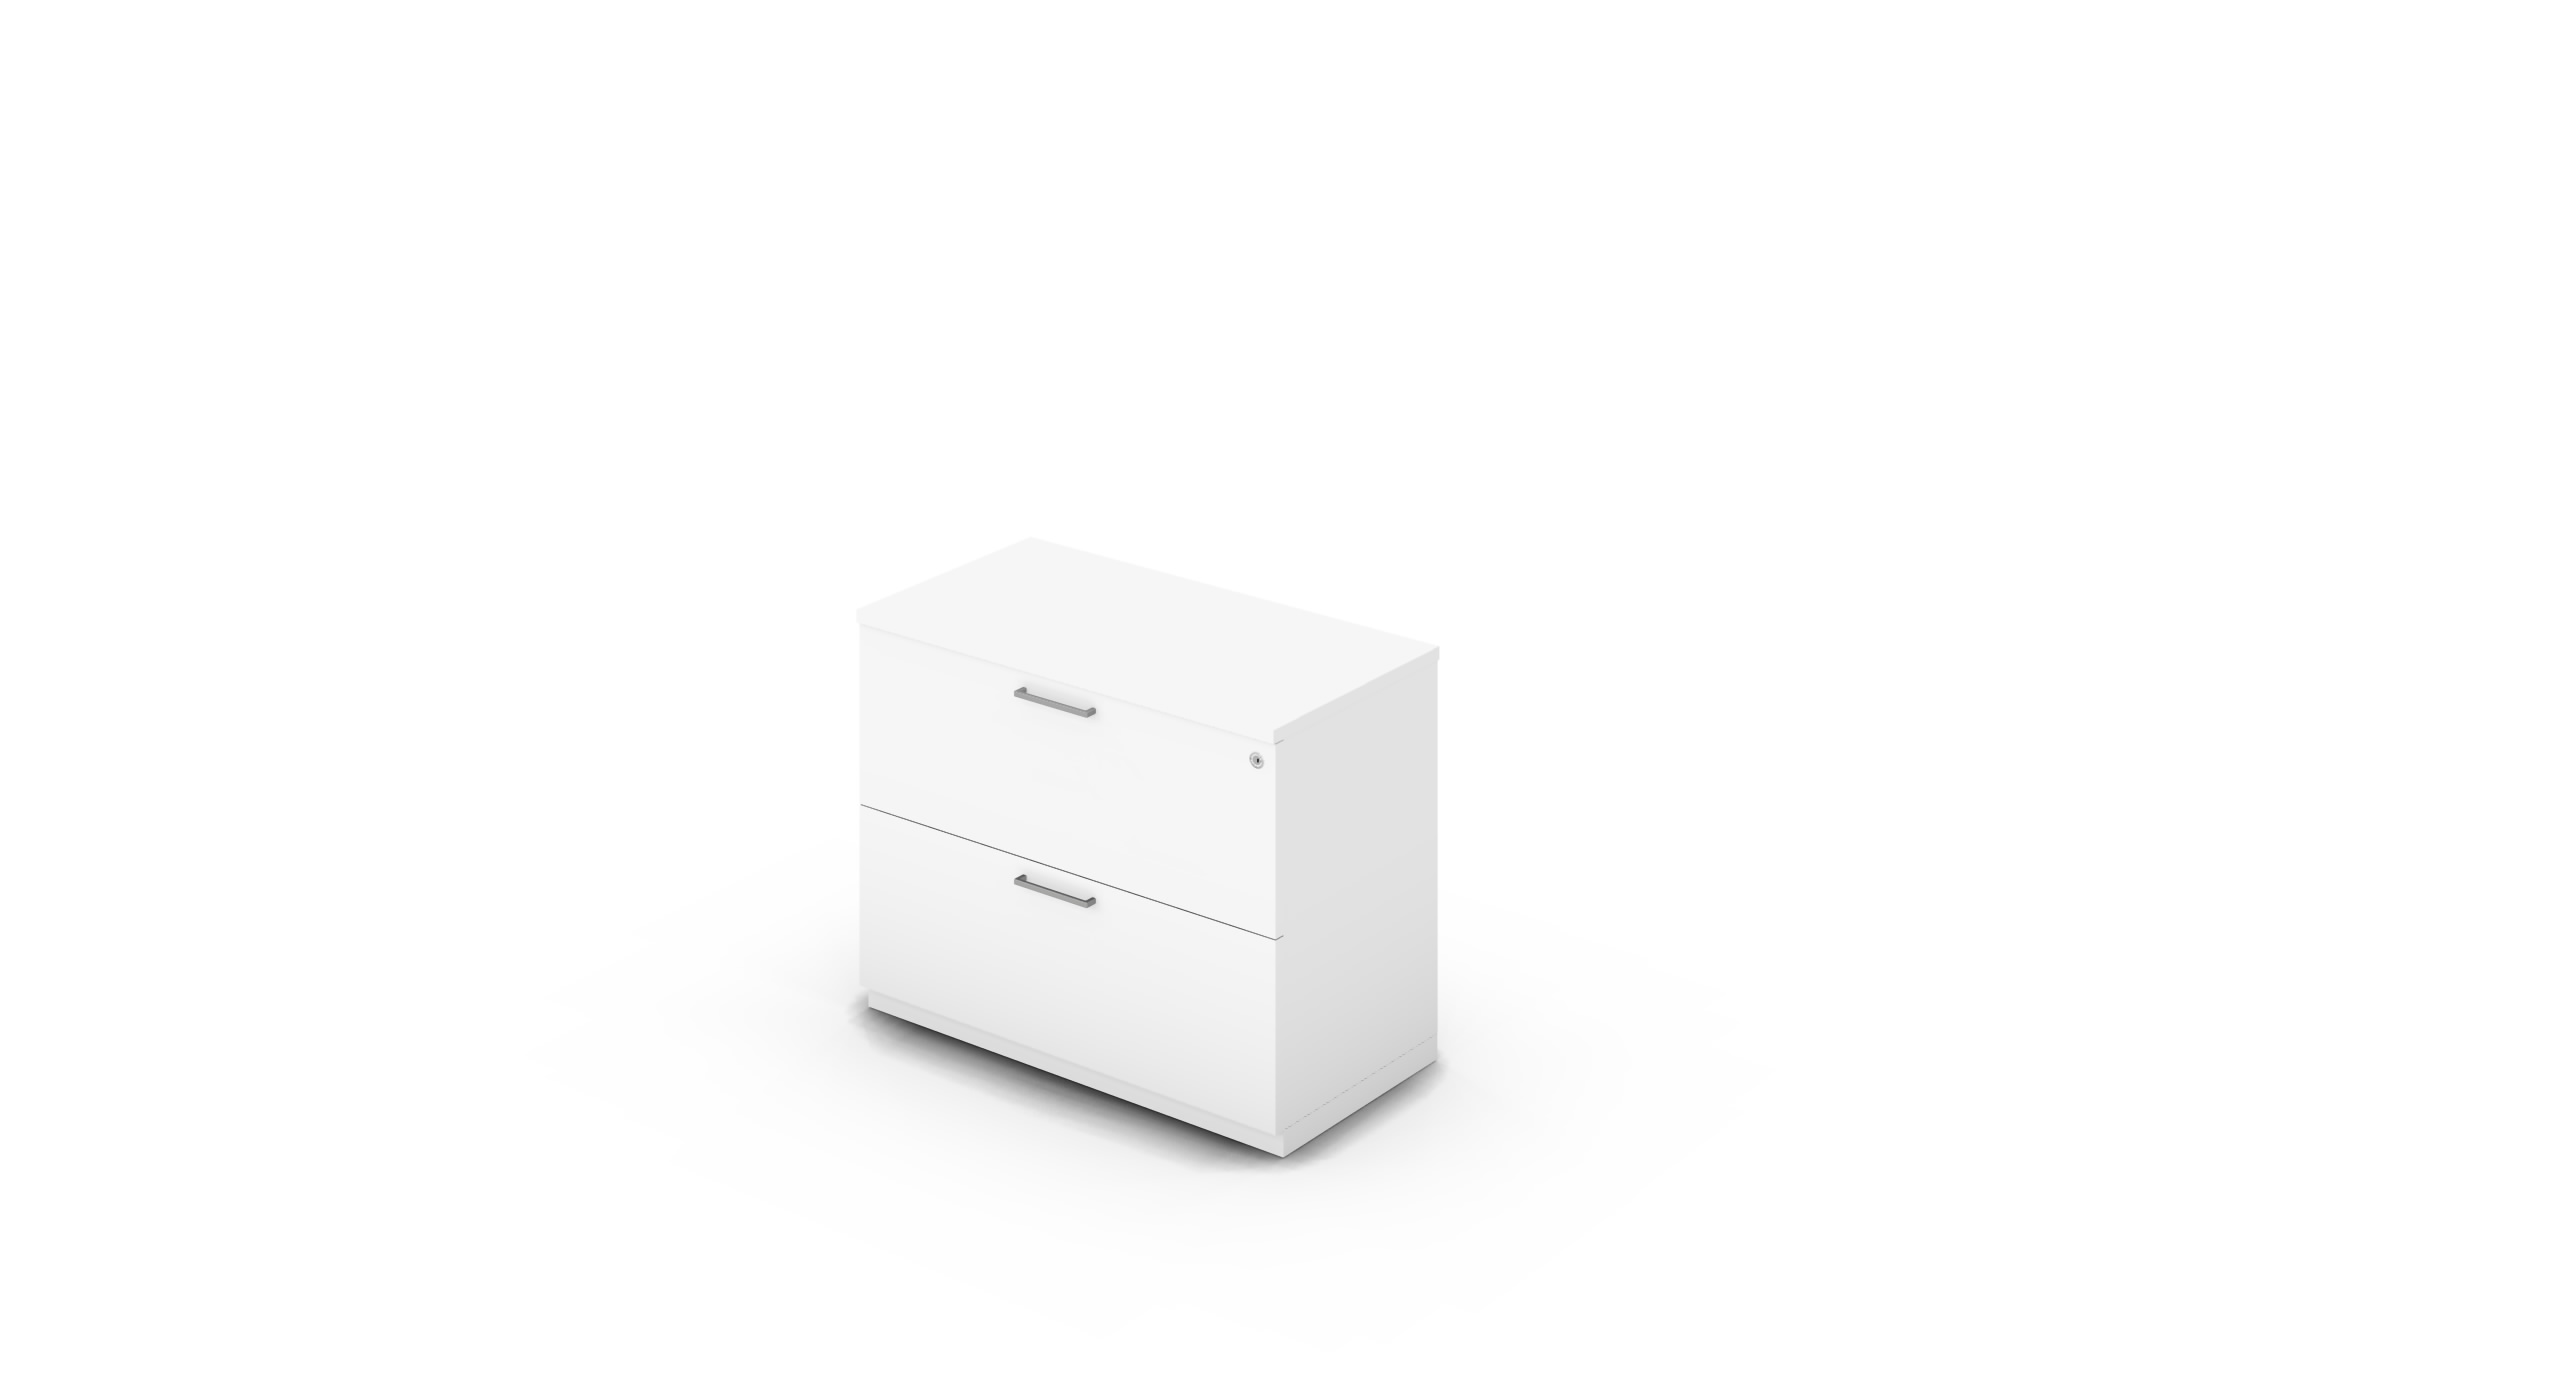 Cabinet_900x450x775_DR_White_Bar_Square_WithCylinder